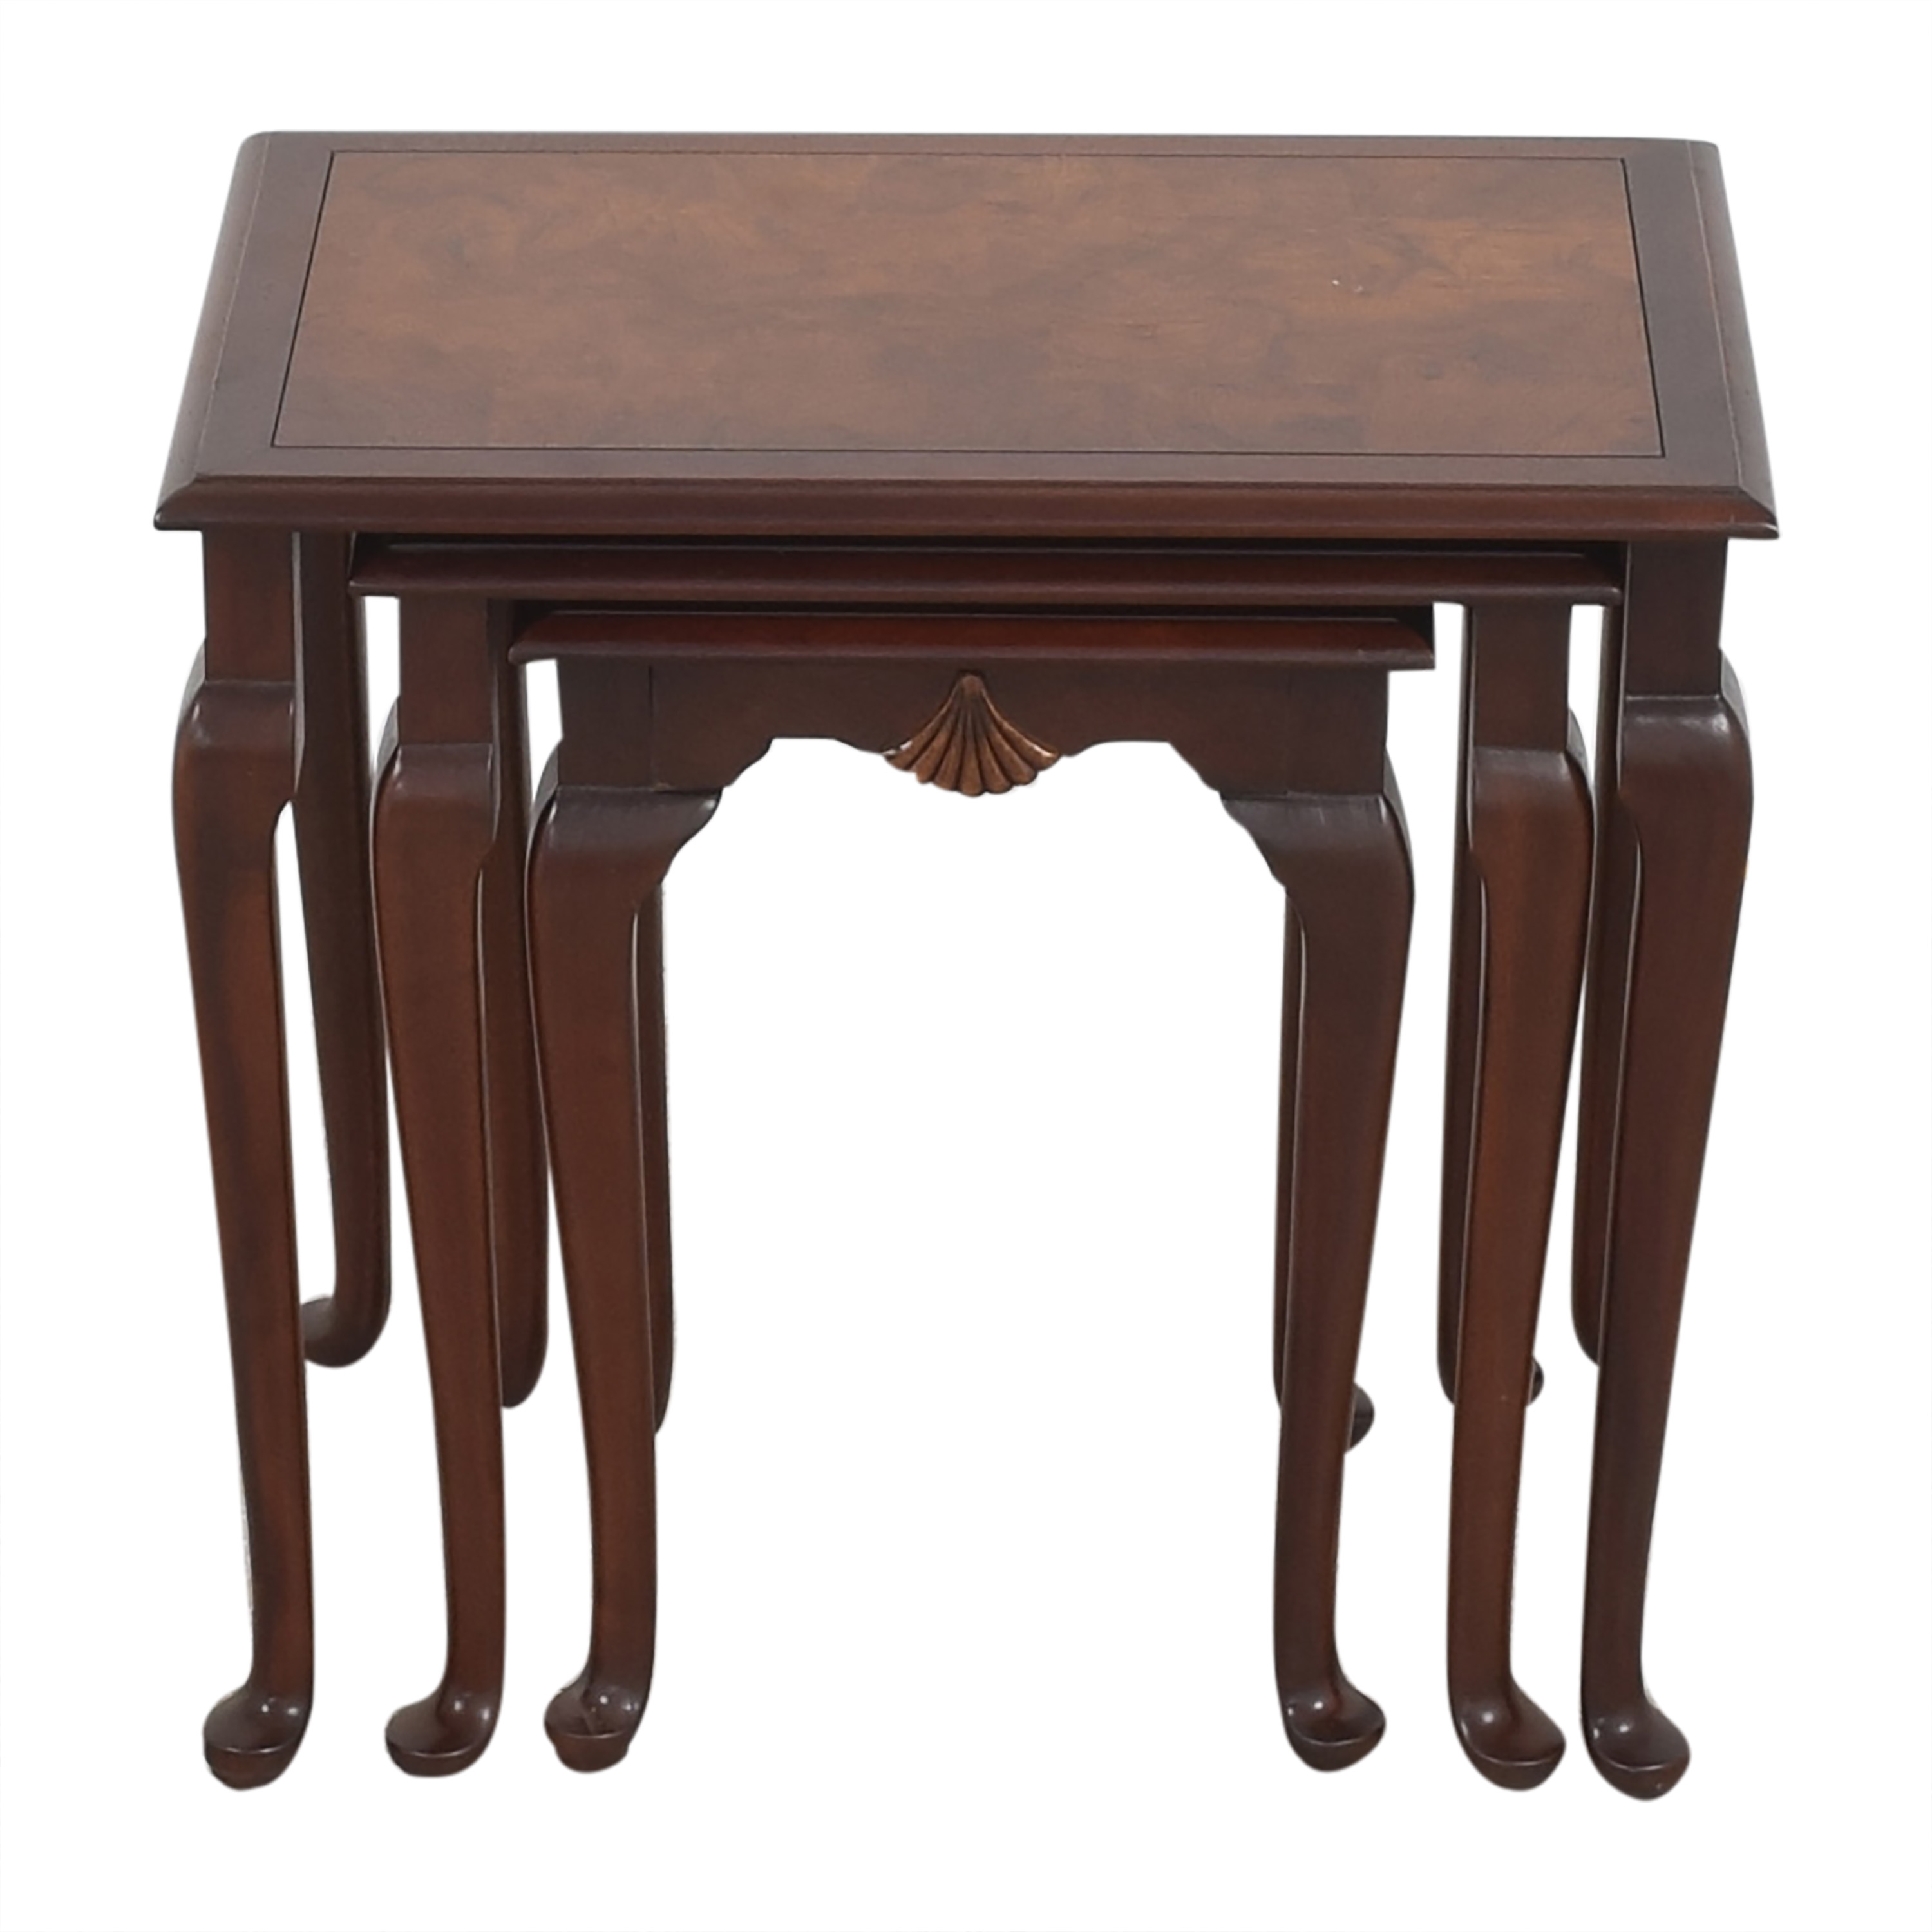 Hekman Furniture Heckman Queen Anne Style Nest of Tables coupon